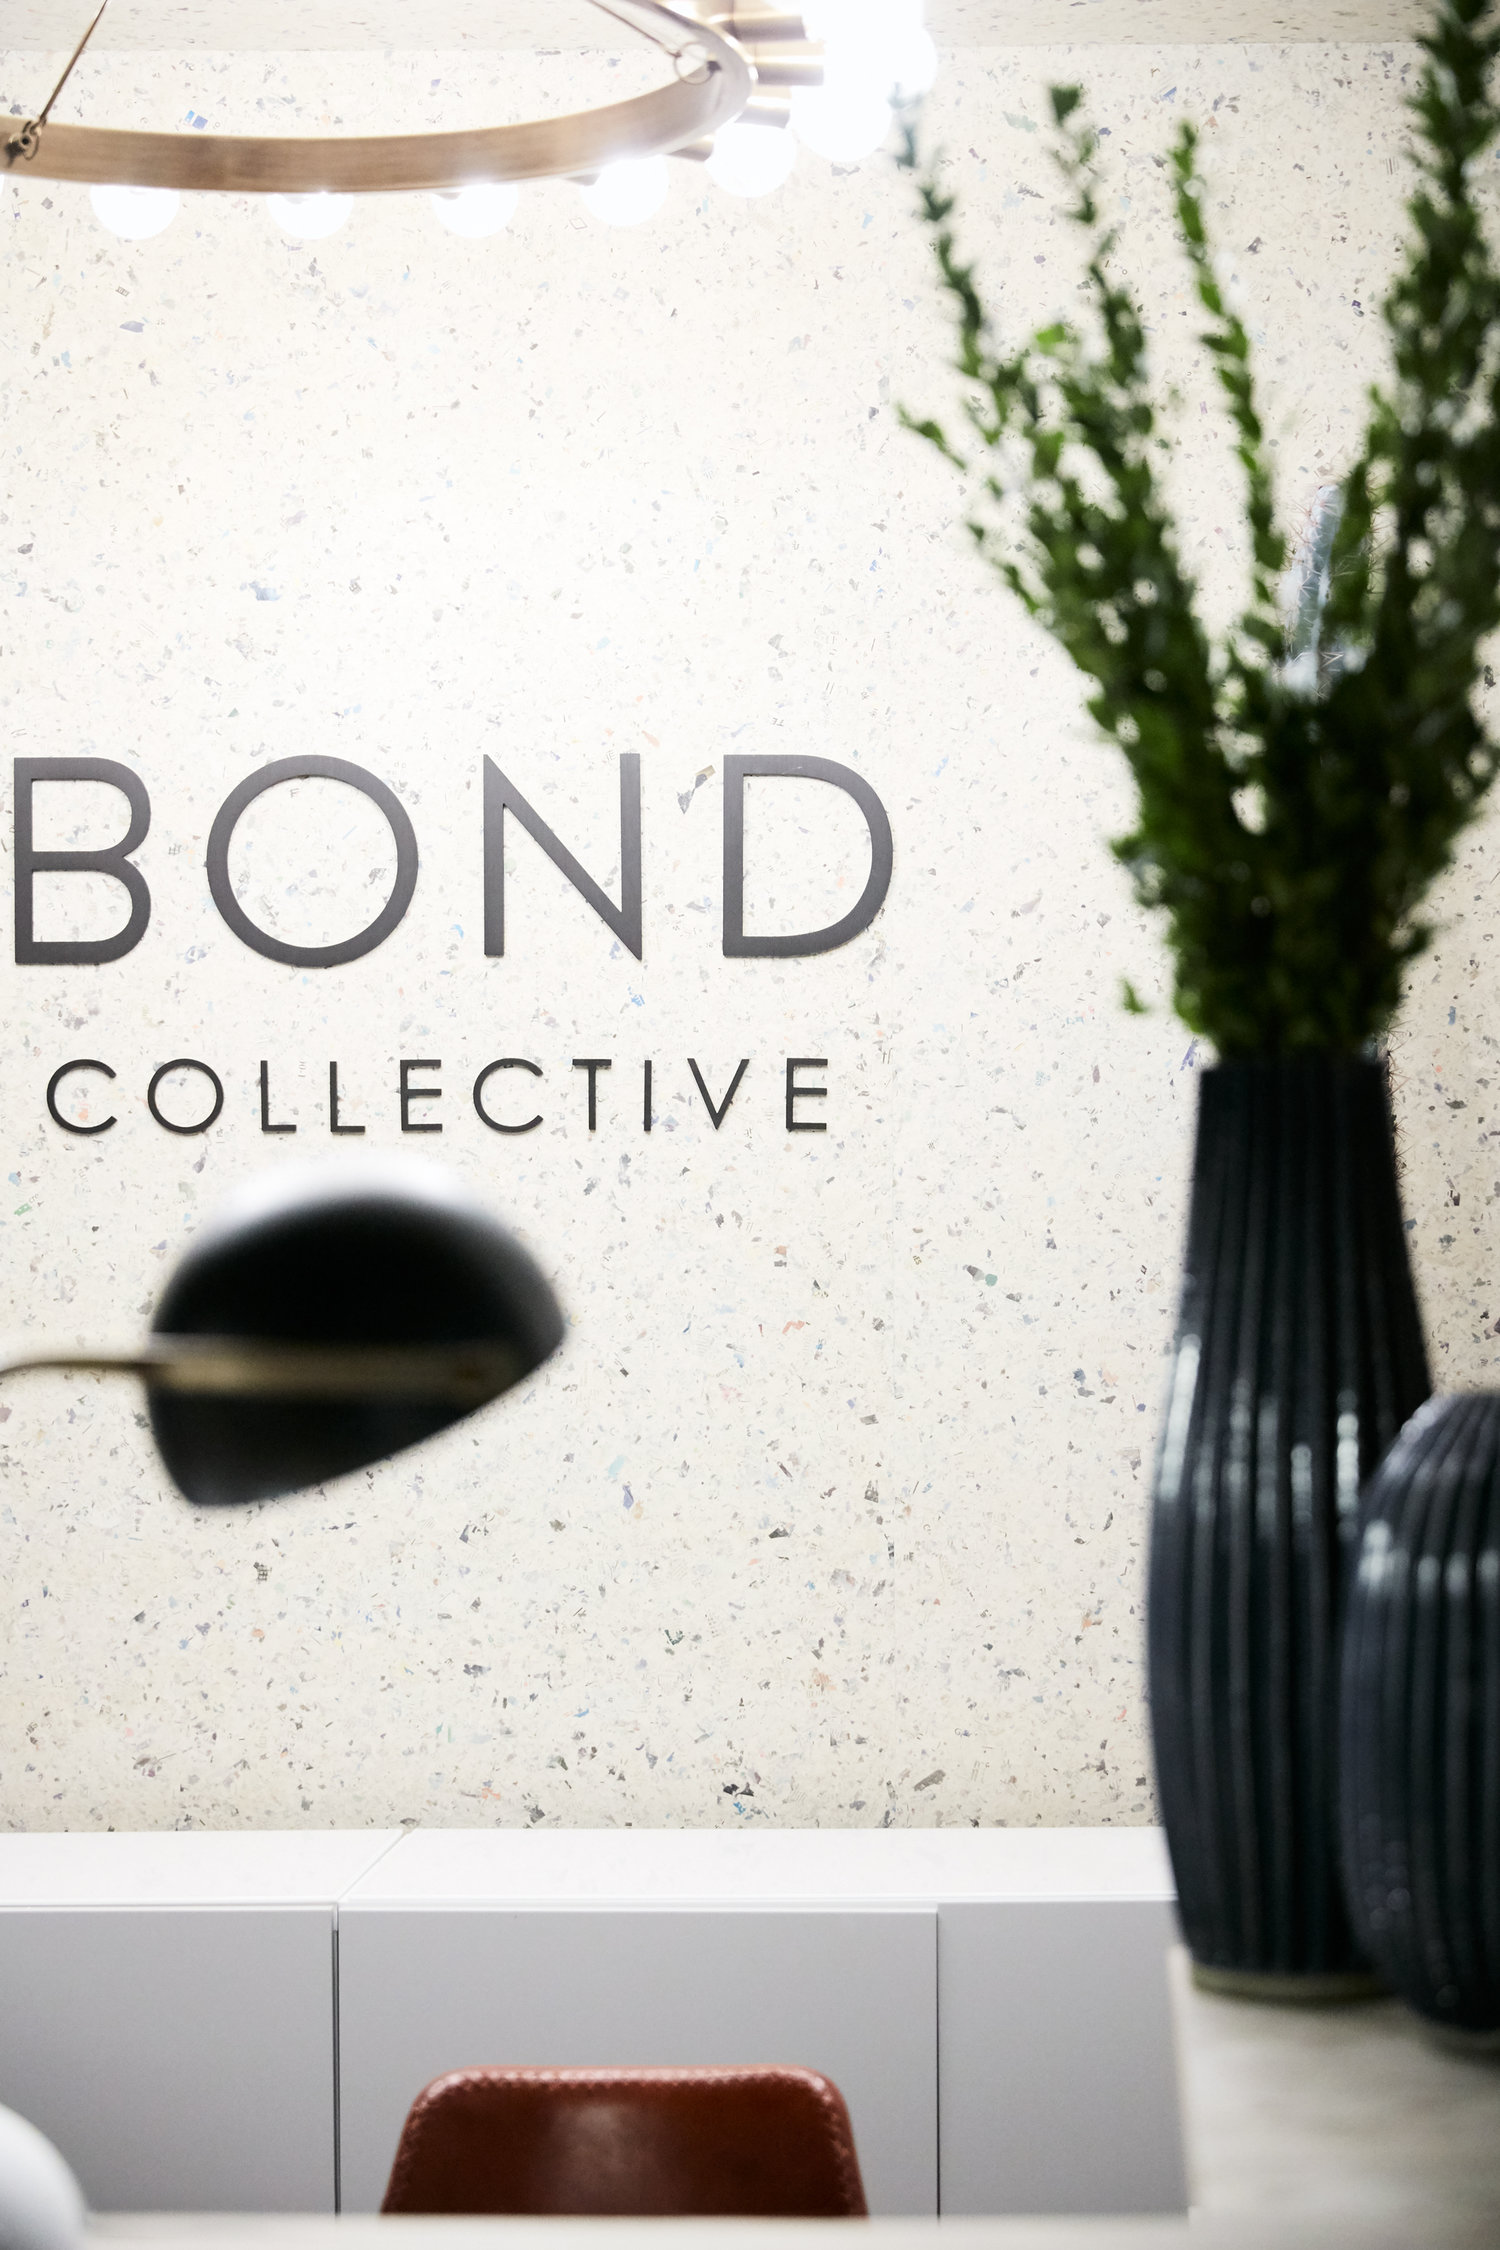 Bond Collective logo on a wall next to a plant